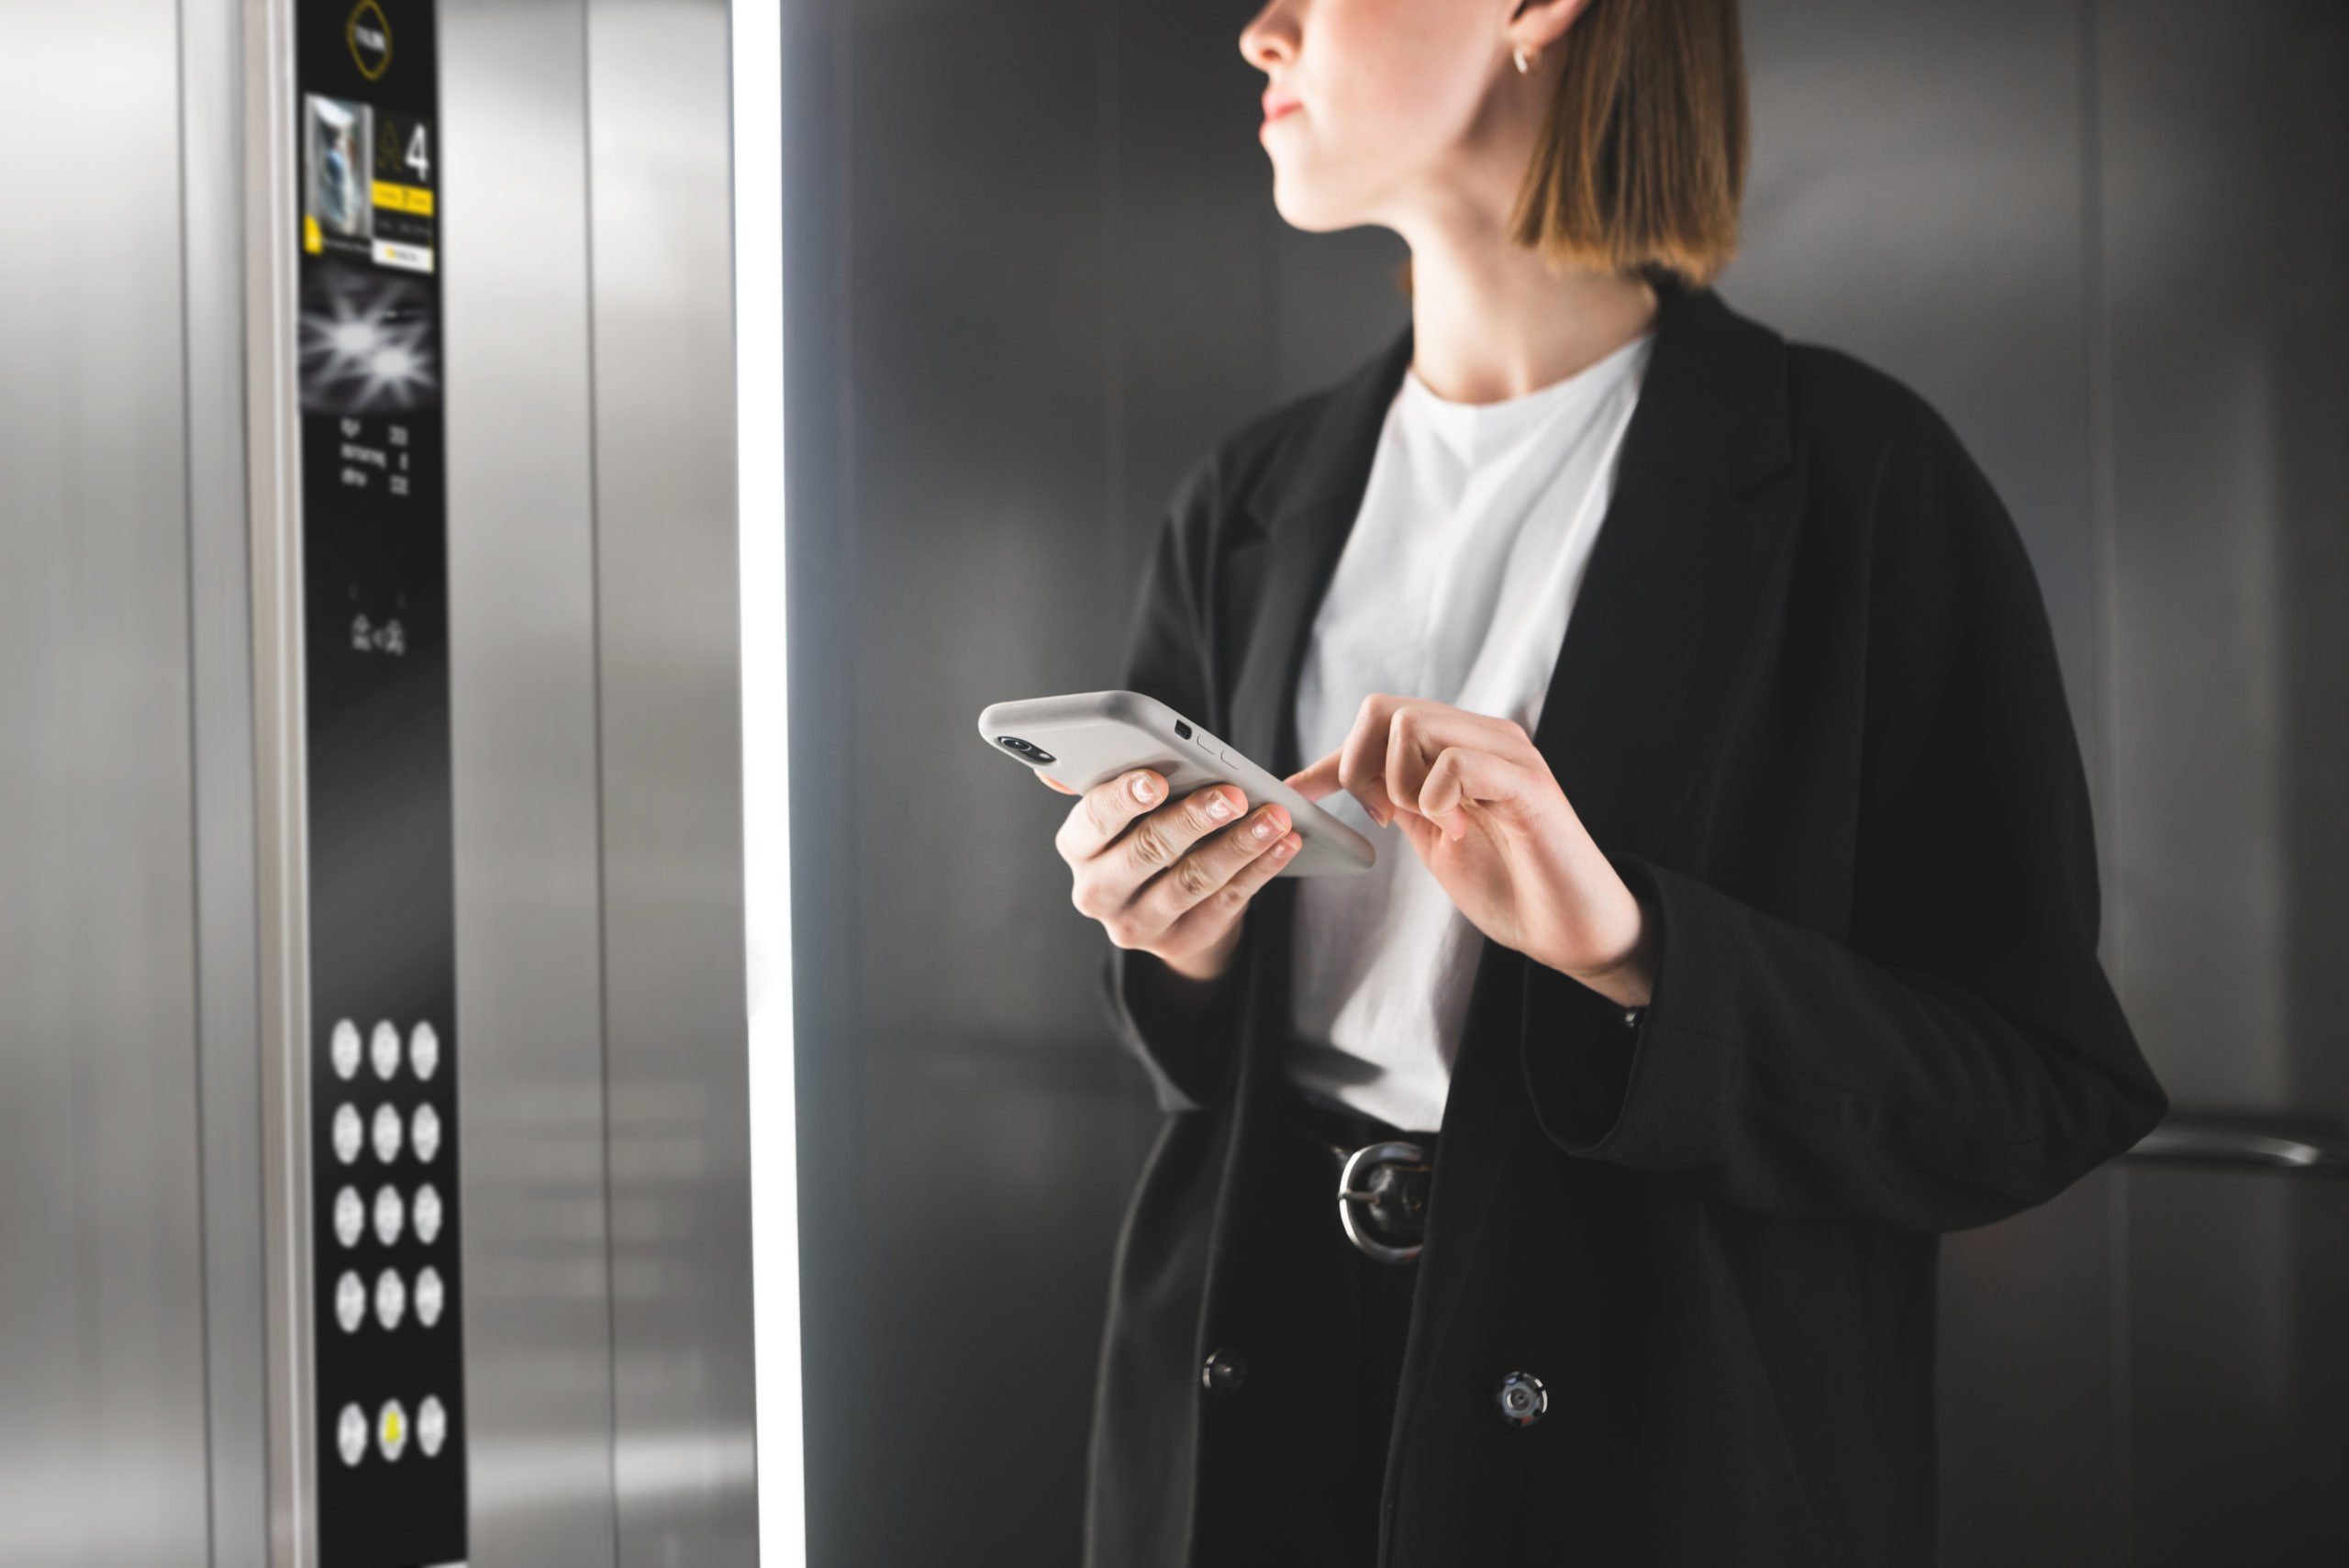 Young employee is looking at the floor number in the elevator holding smartphone. Smart businesswoman is keeping the cellphone in her hands in the lift.